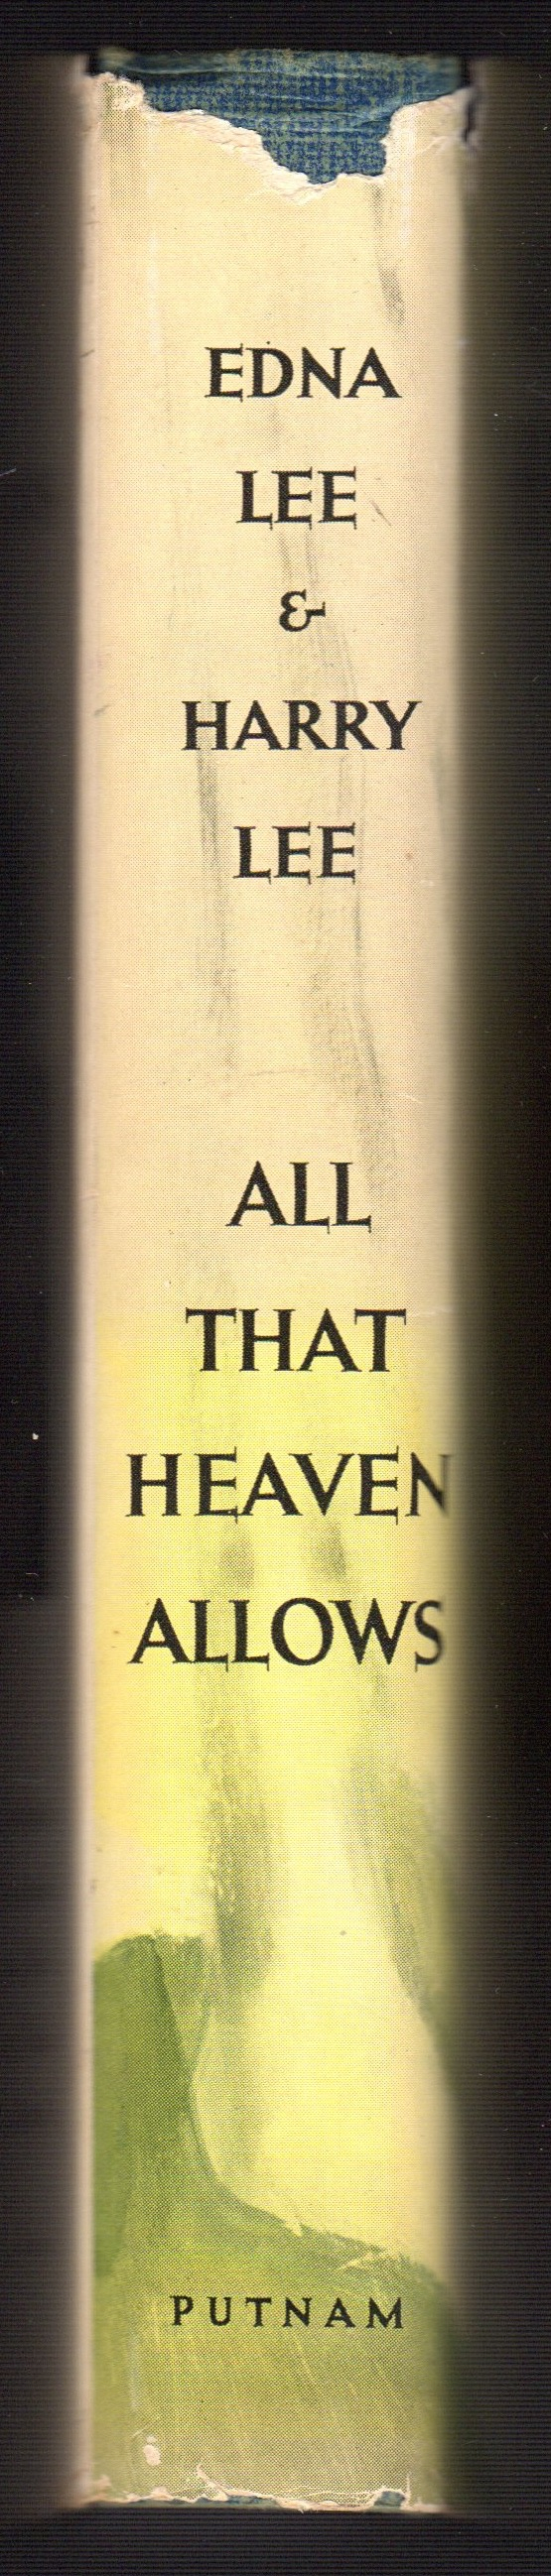 Image for ALL THAT HEAVEN ALLOWS